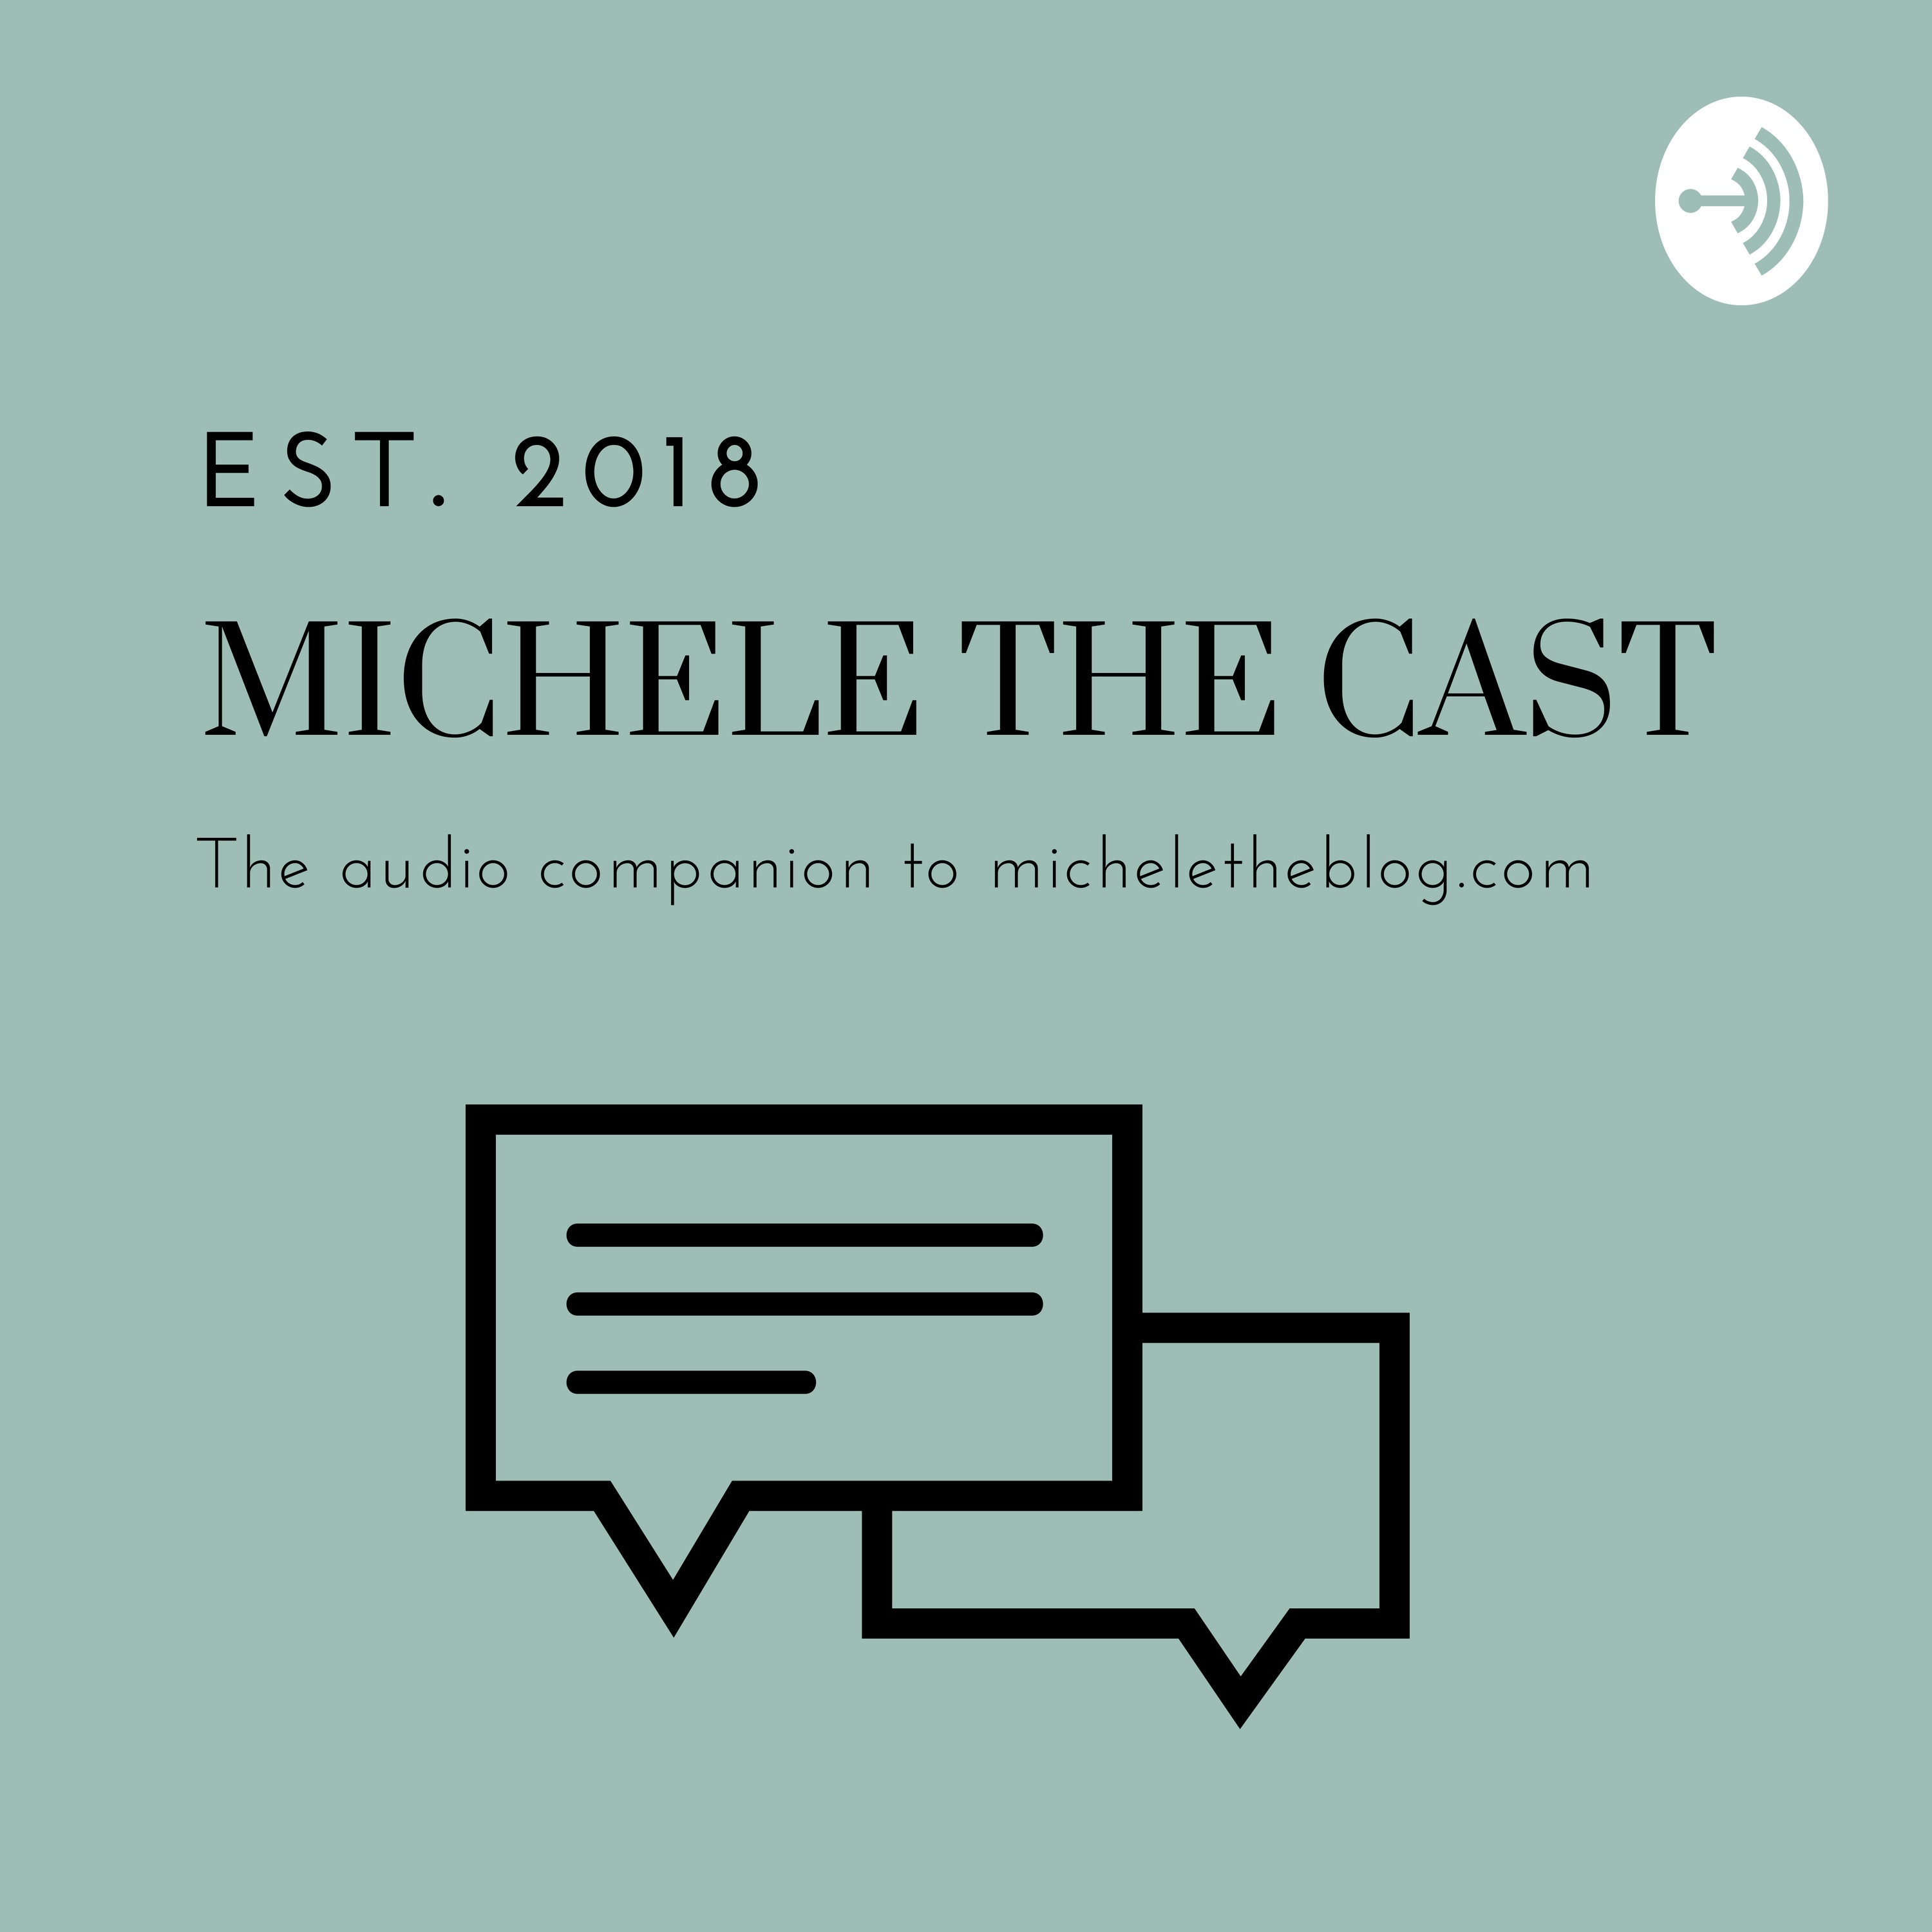 Welcome to Michele the Cast!